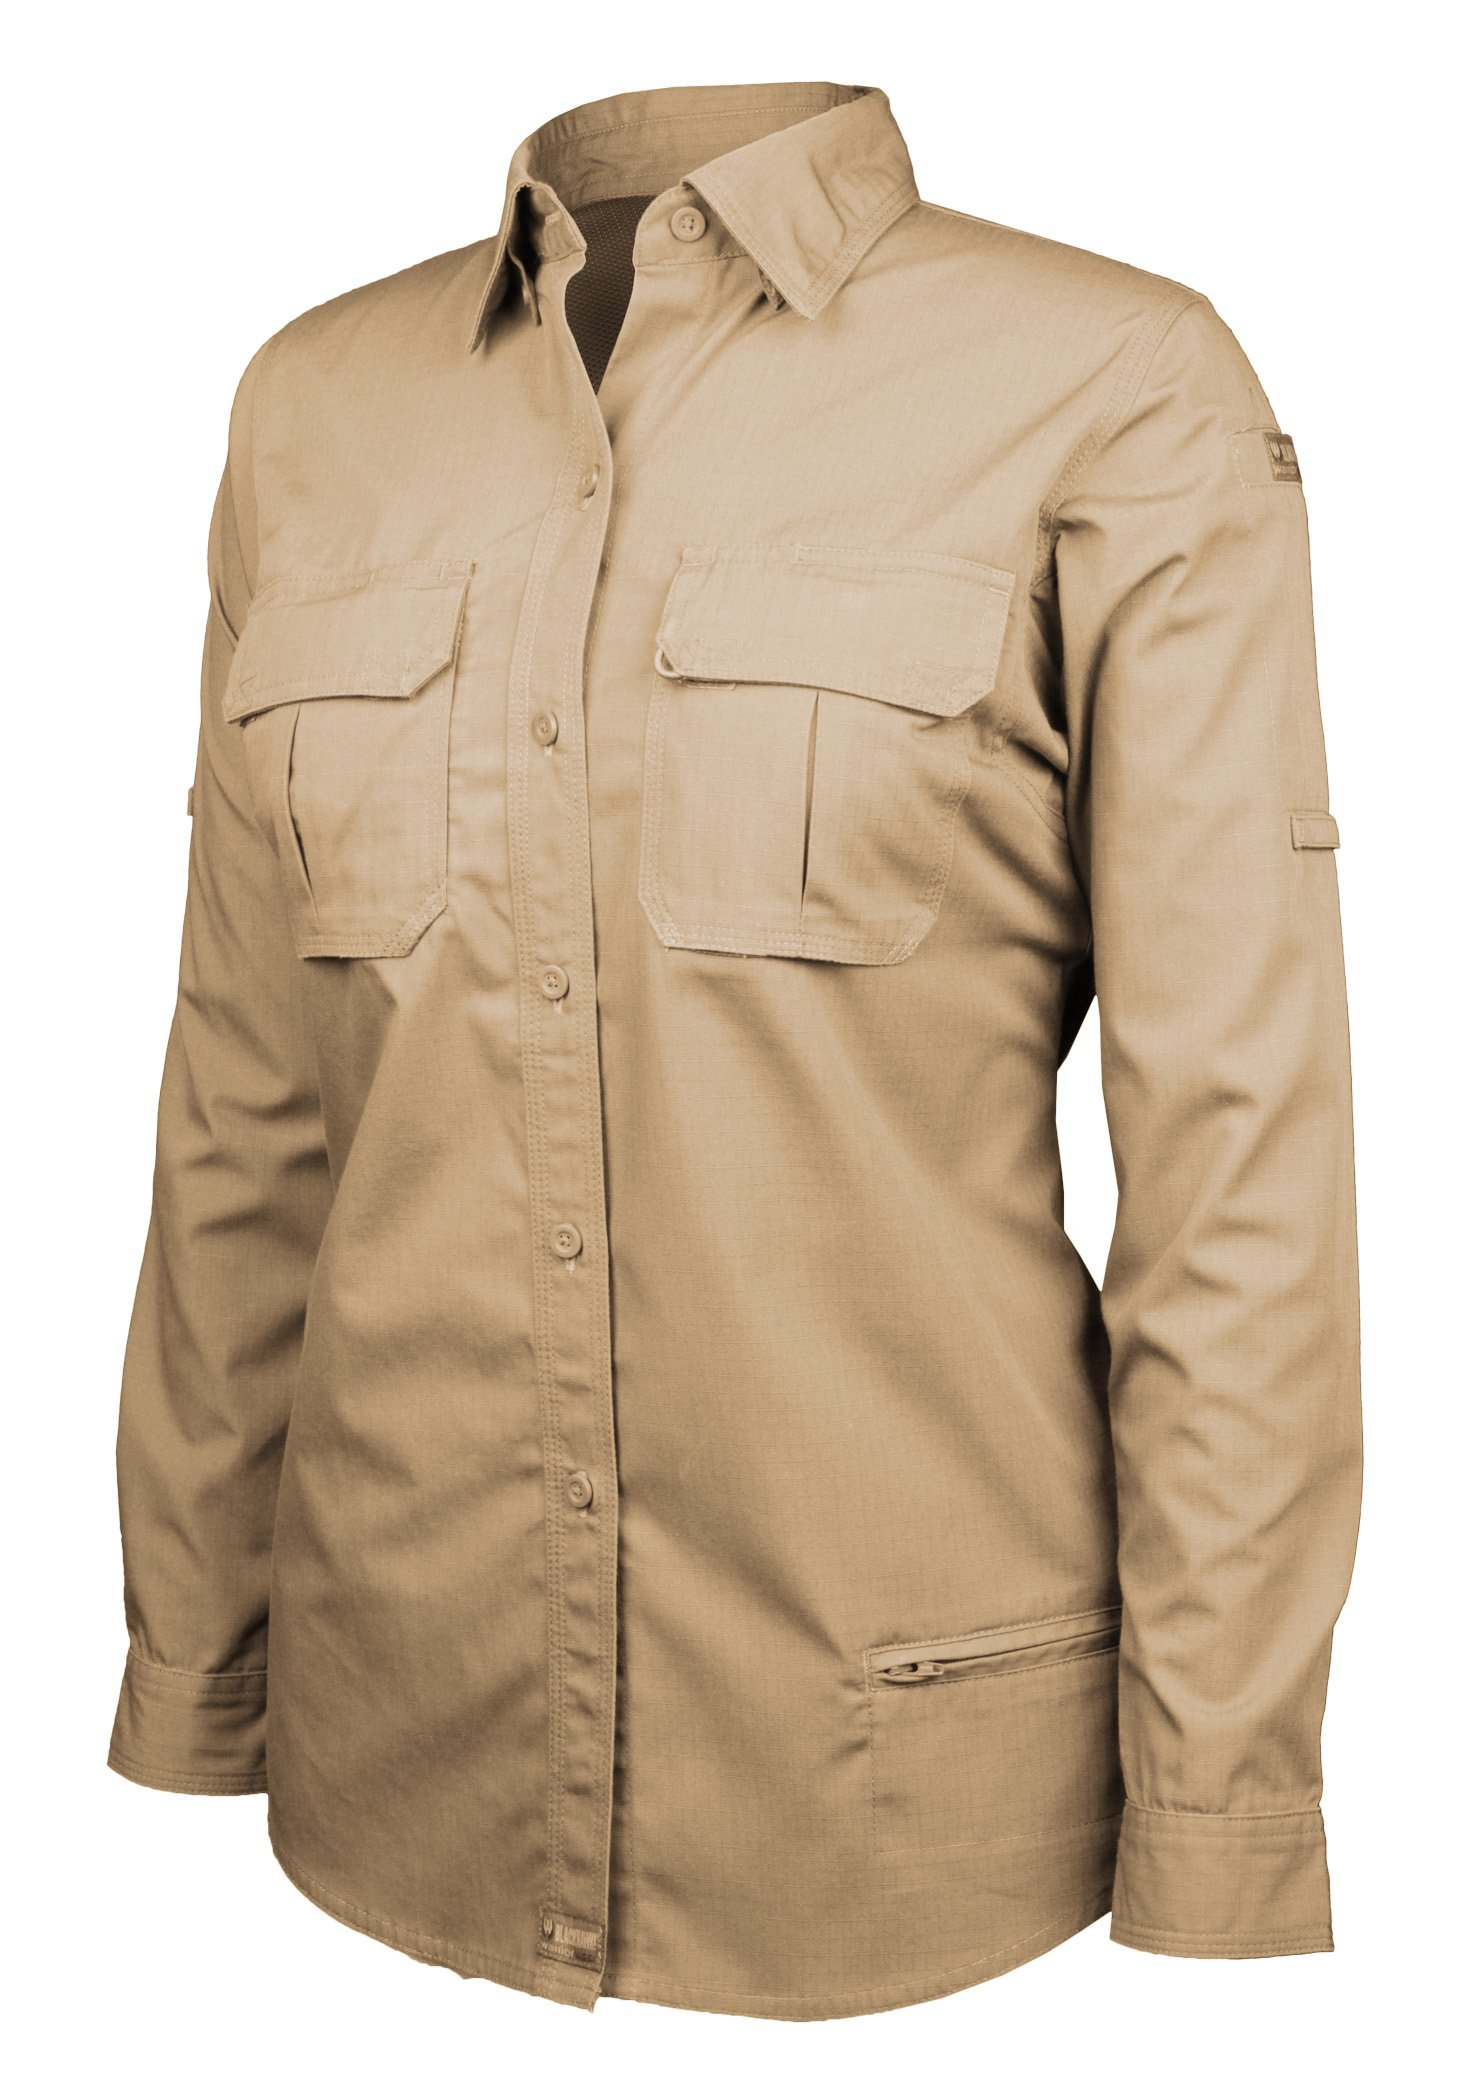 Blackhawk! Women's Lightweight Tactical Long Sleeve Shirt, Khaki, XX-Large by BLACKHAWK!